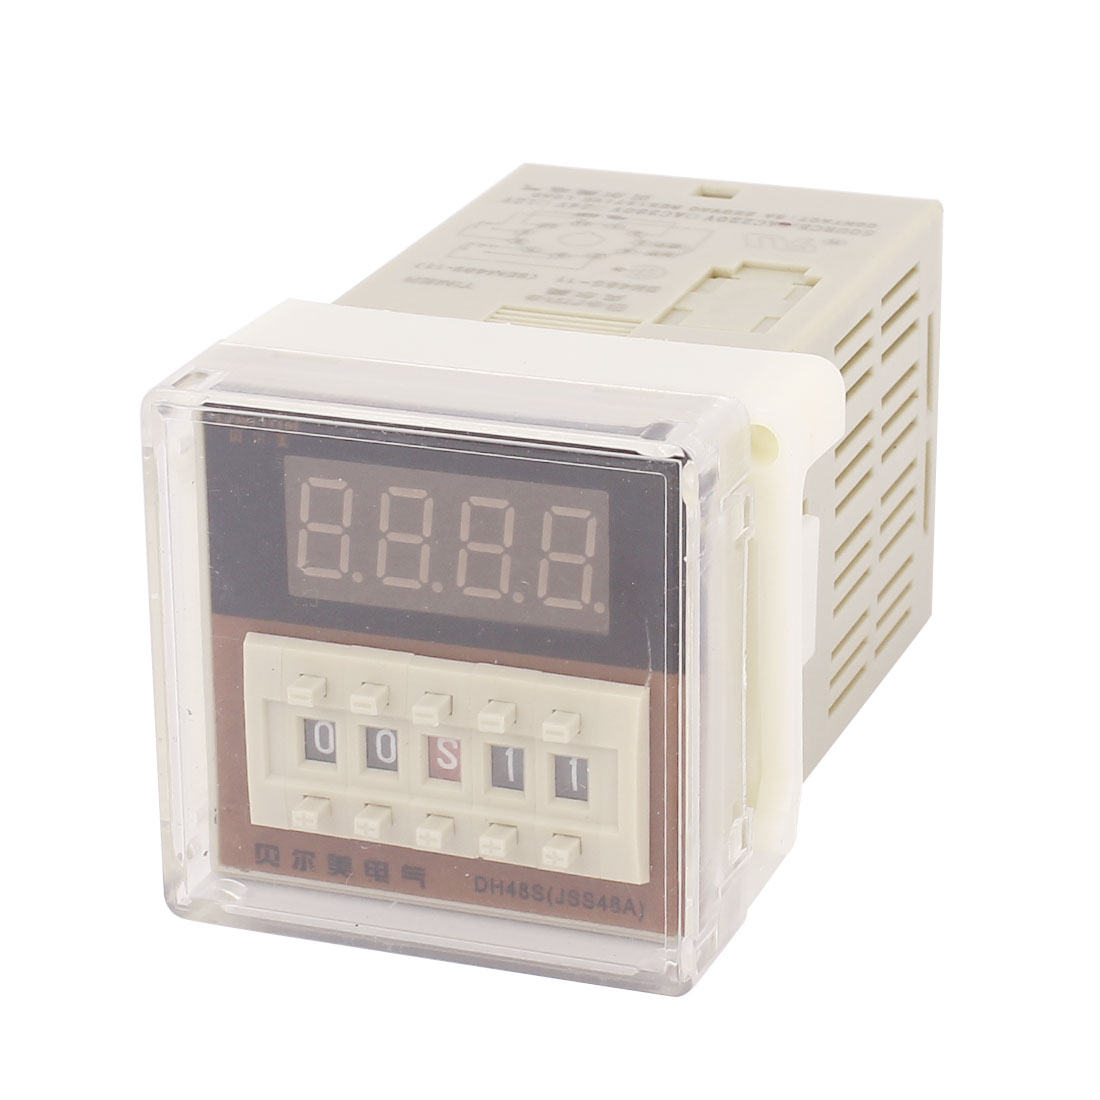 Dh48j-8 Ac220v 11 Pins Lcd Digital Timer Time Counter Delay Relay 0.01S - 99H99m